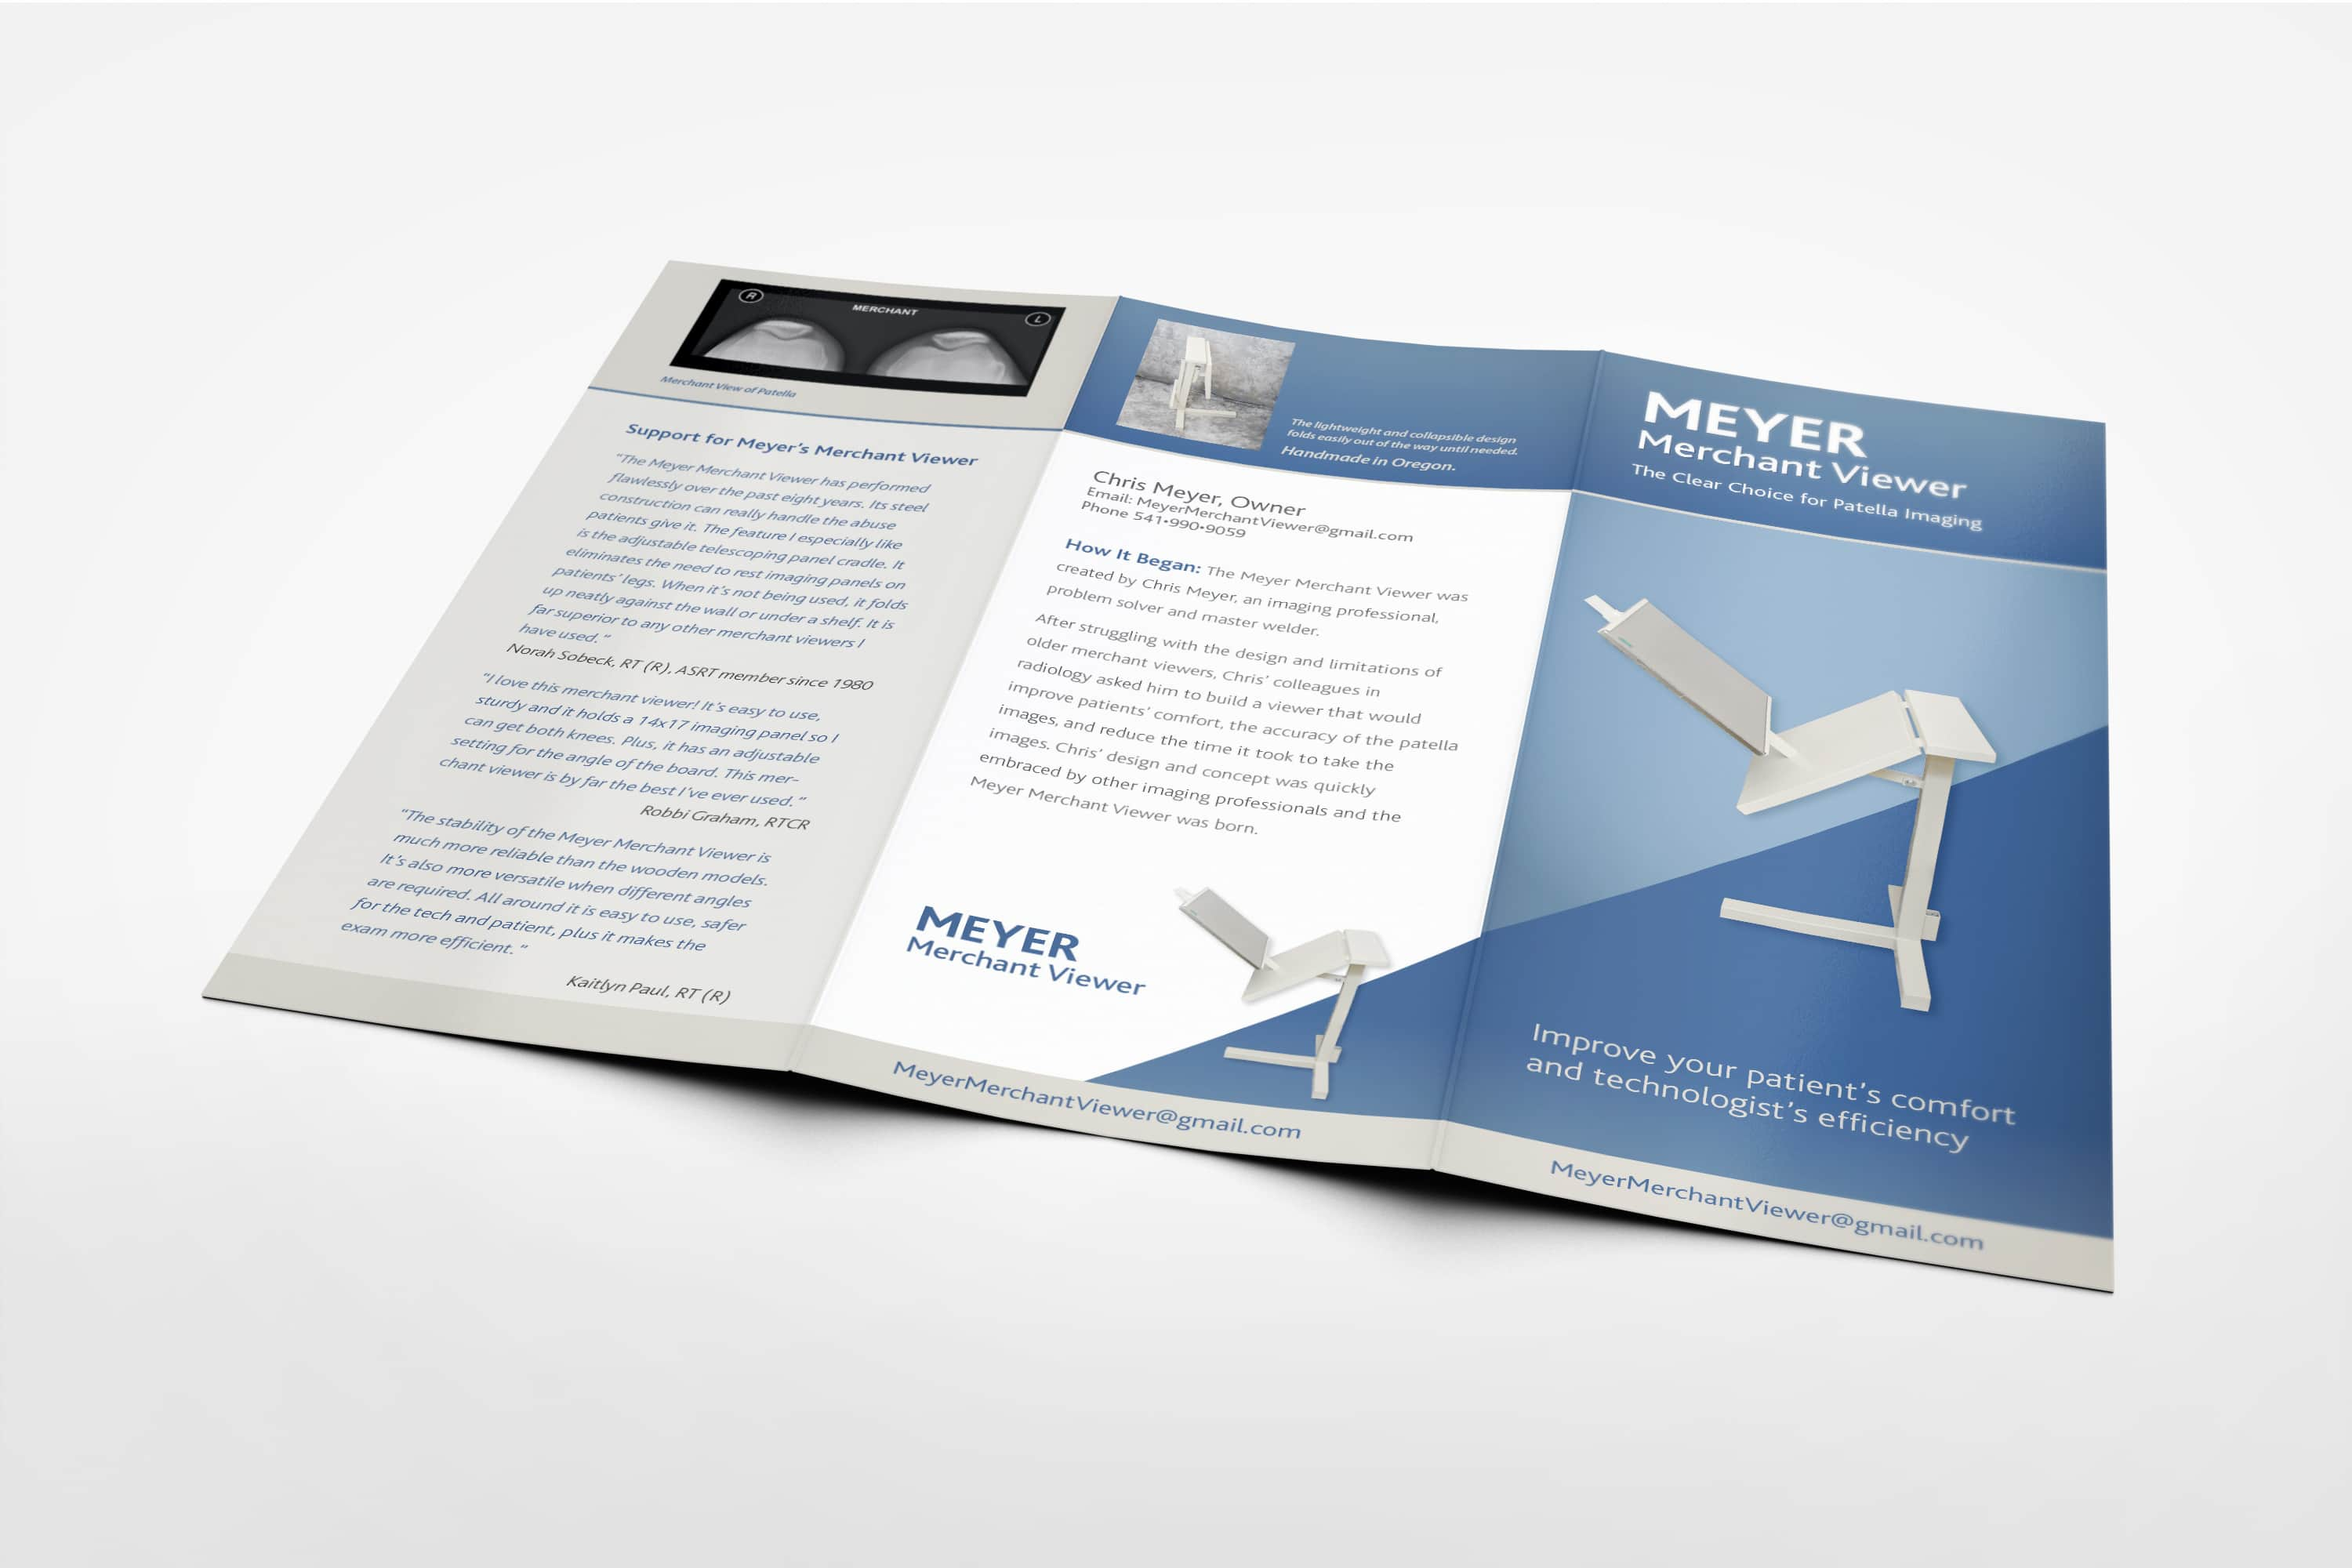 Graphic Design of trifold brochure exterior